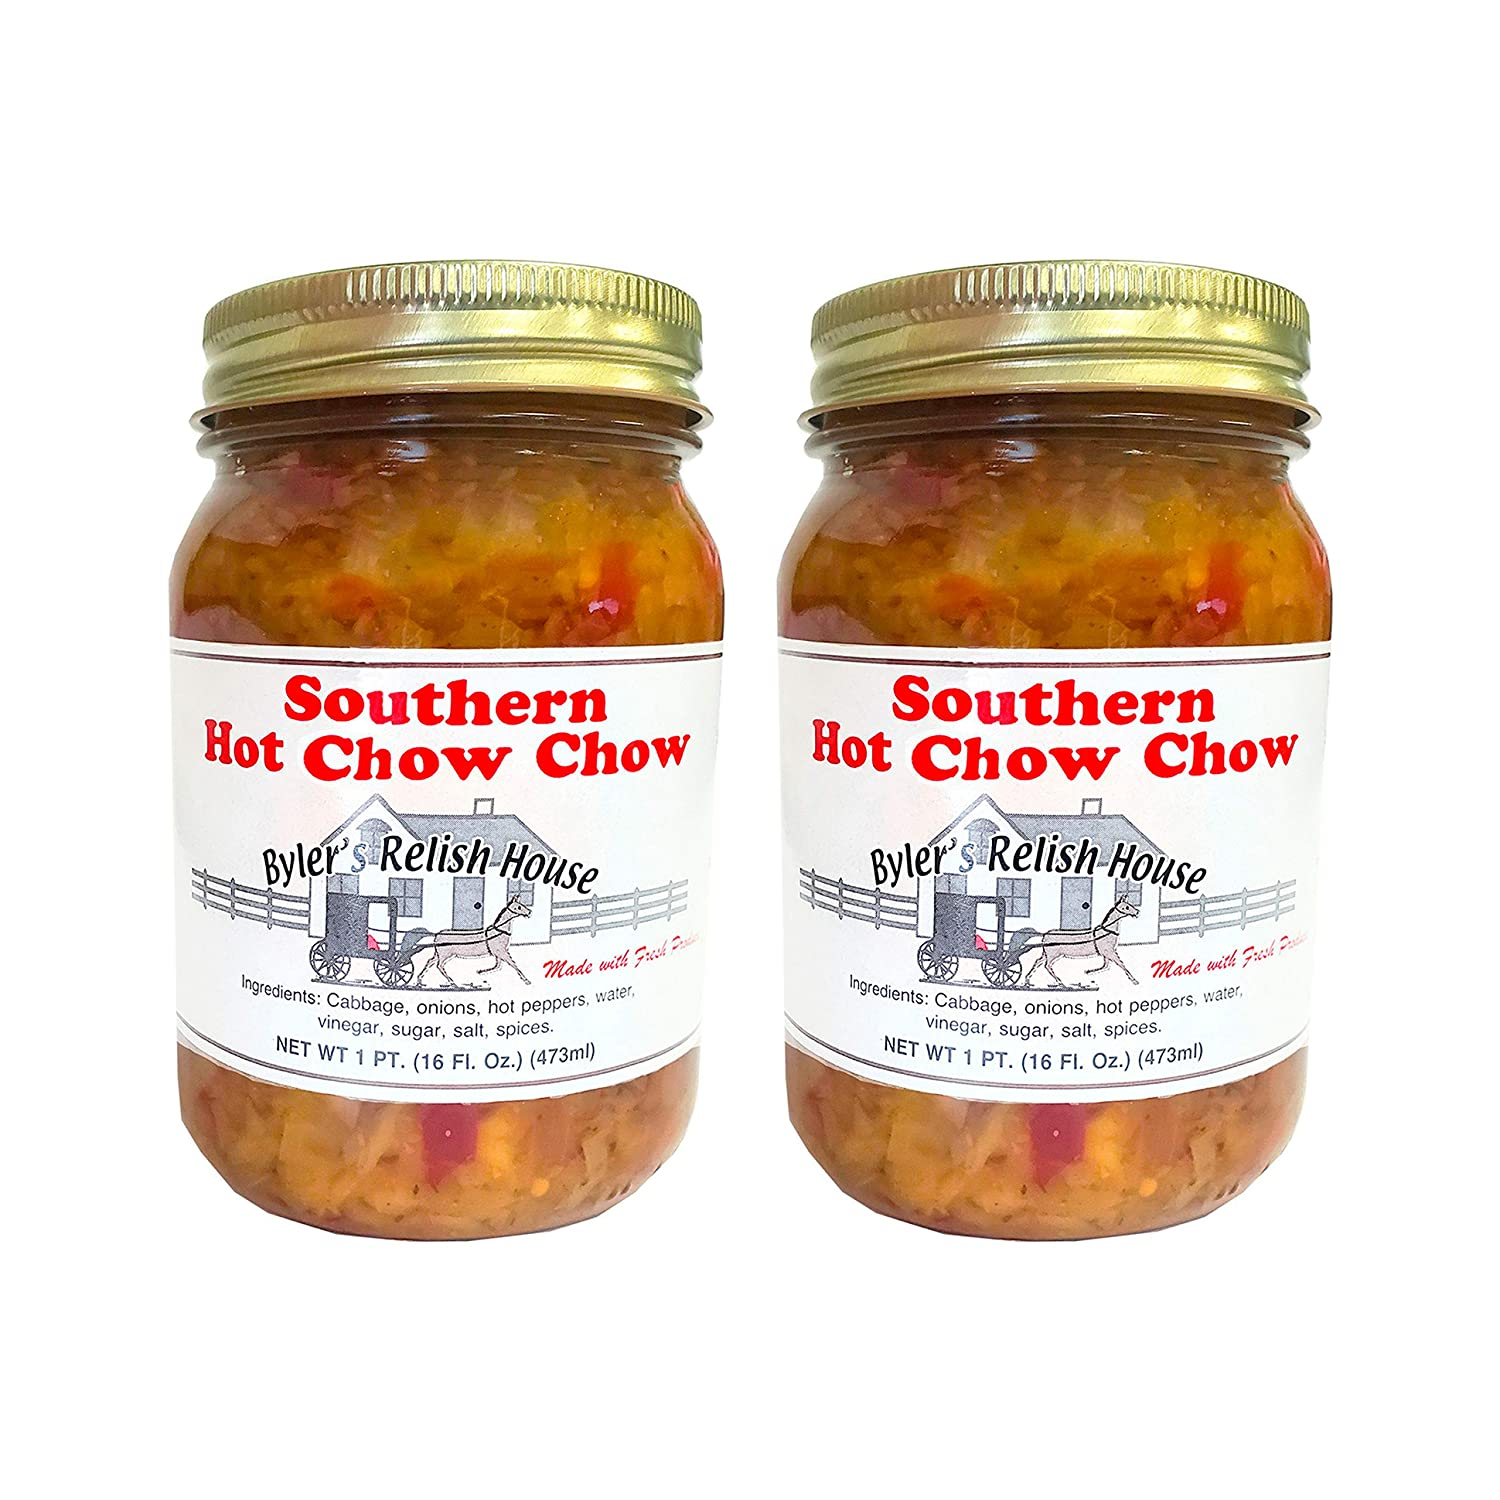 Southern Style Hot Chow Chow - Two 16oz Jars